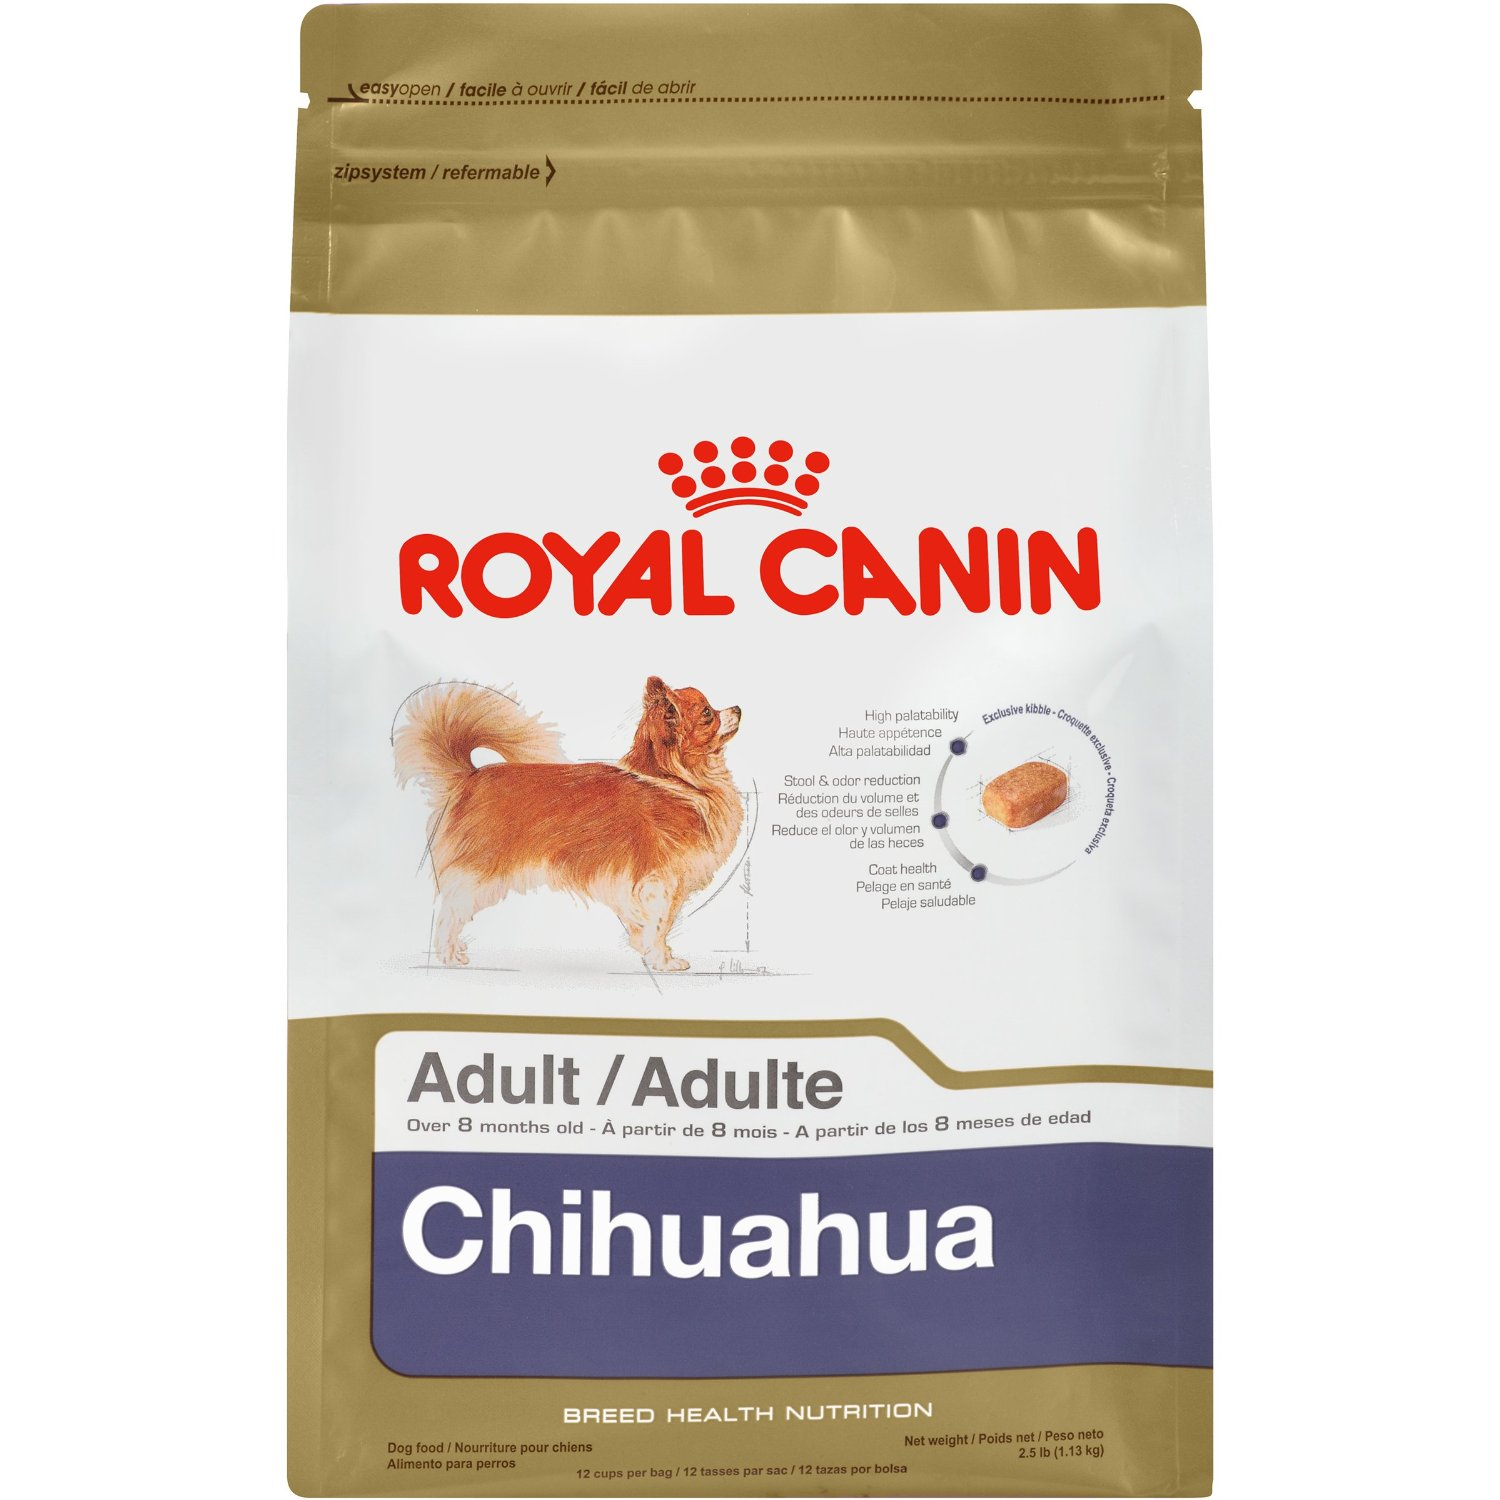 Royal Canin Chihuahua Dog Food